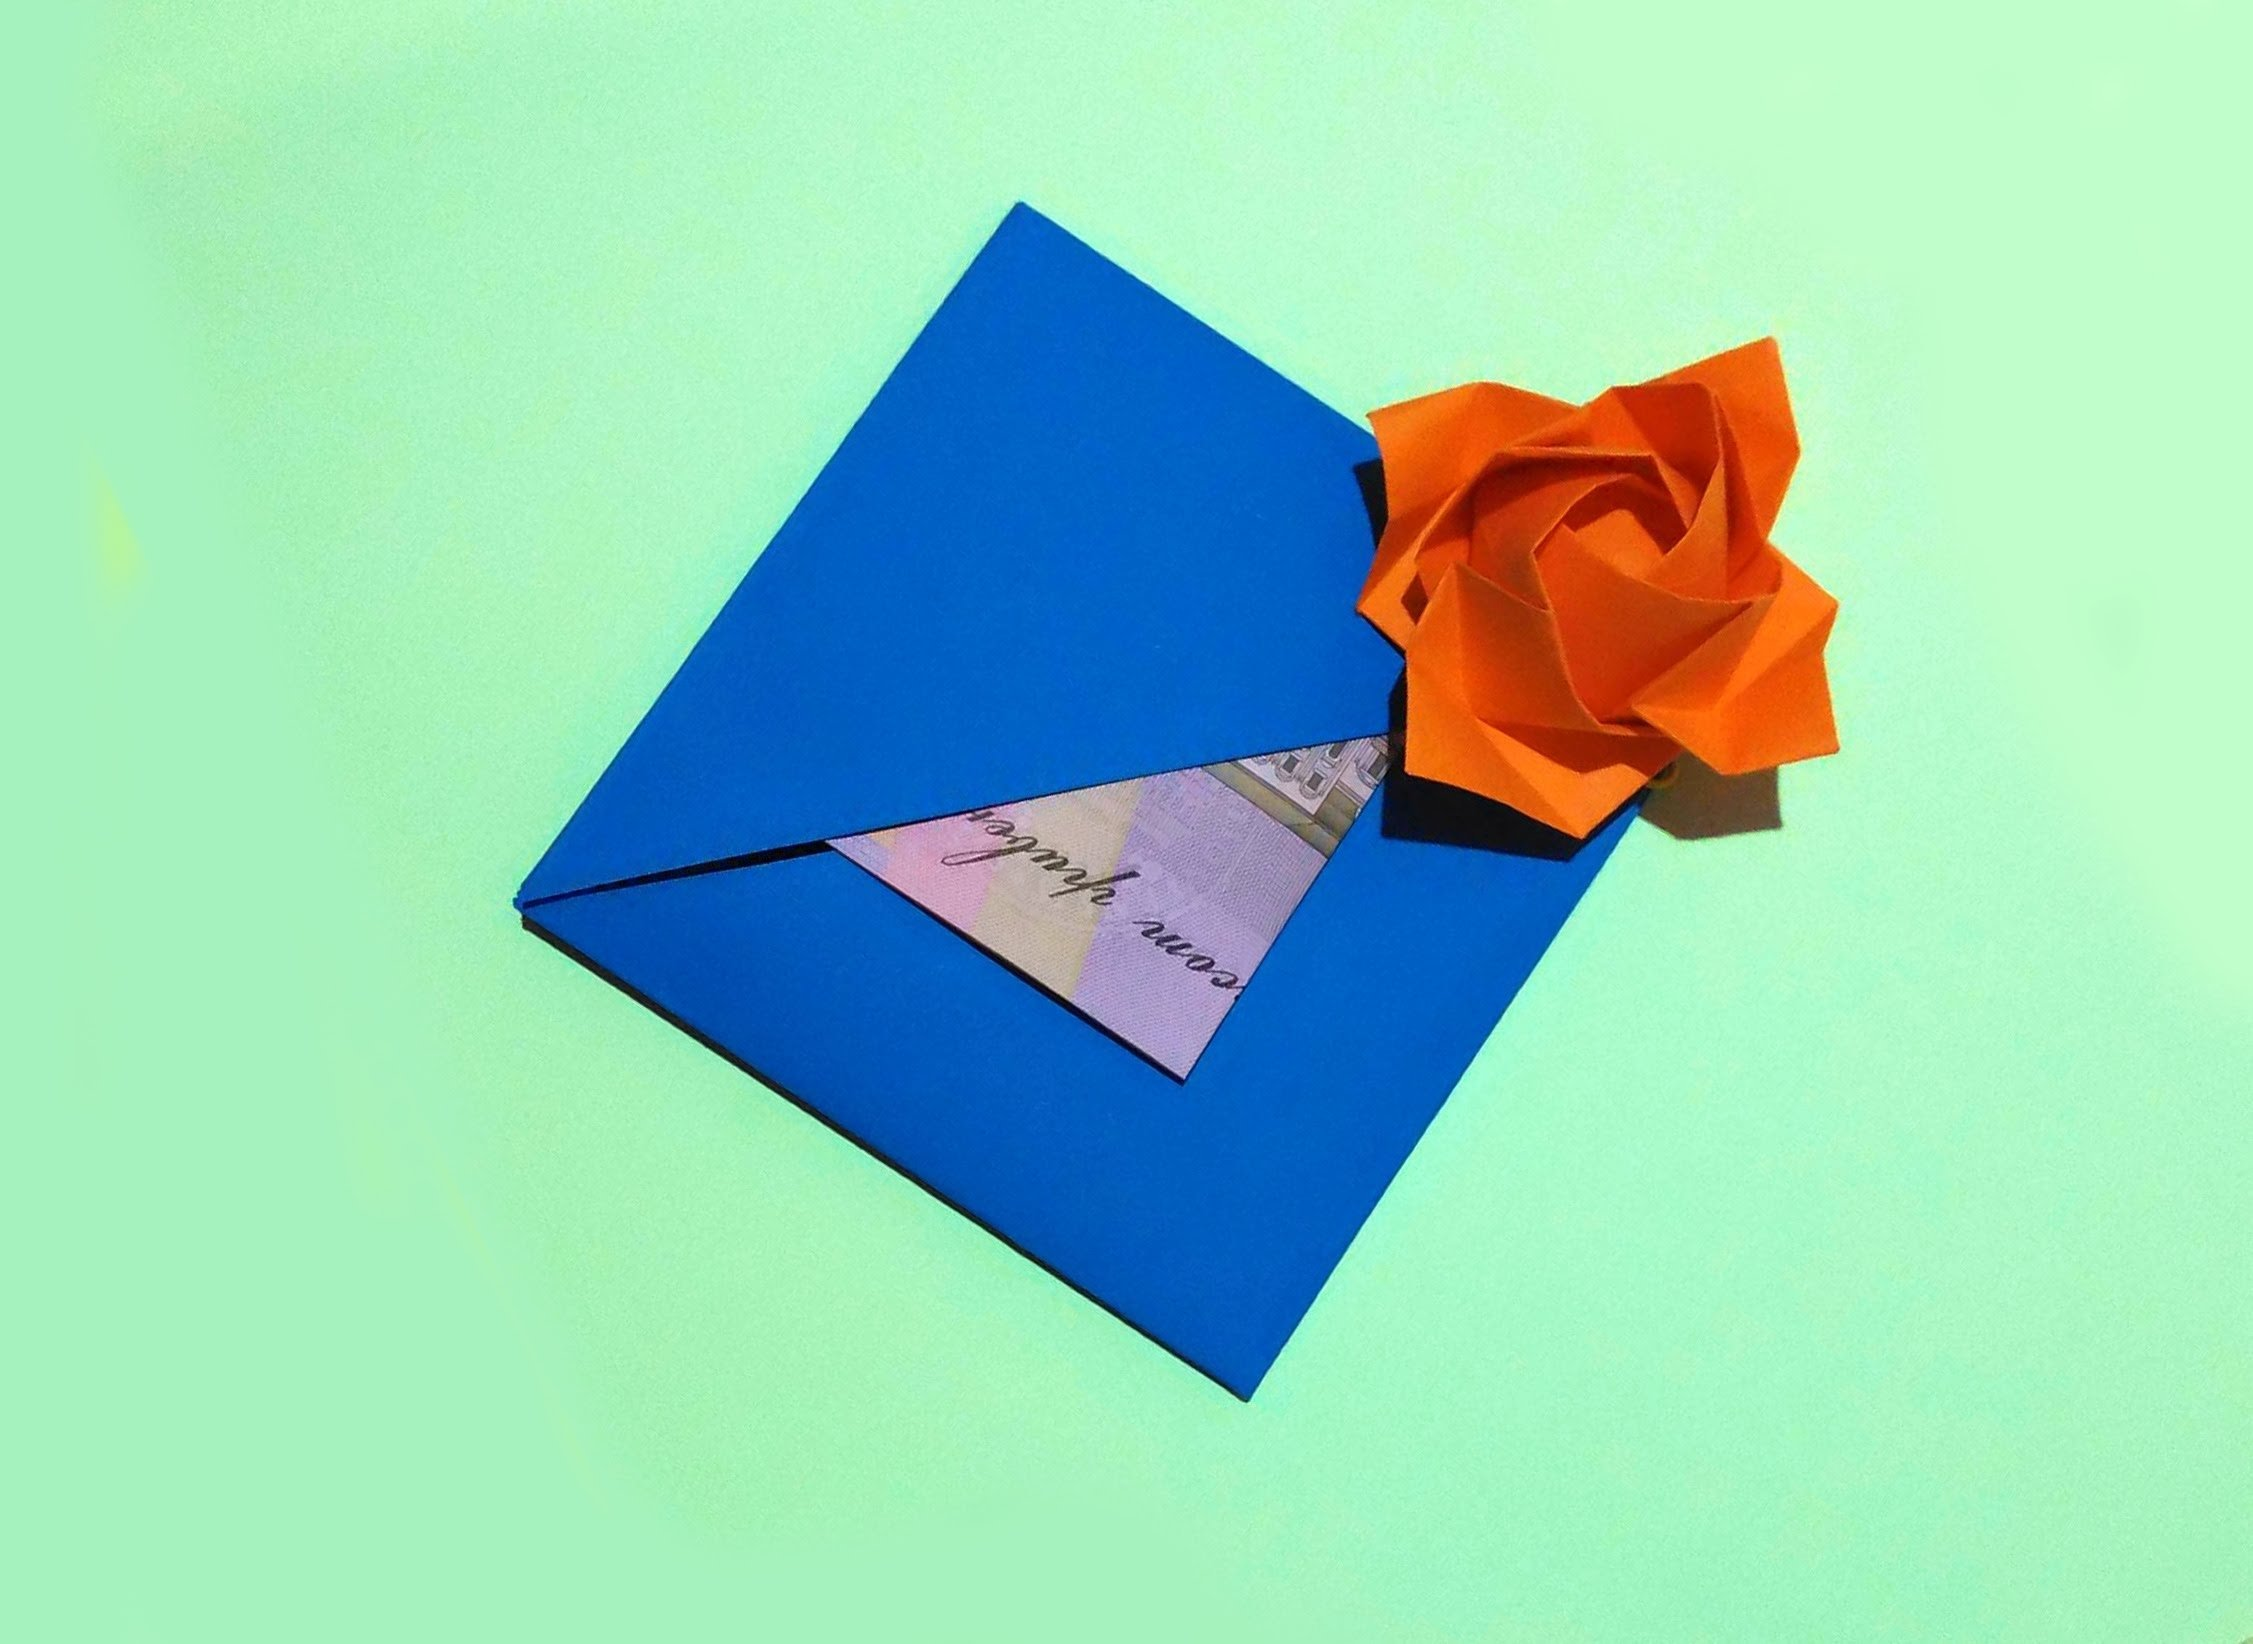 10 Elegant Gift Card Ideas For Women easy gift card with flower and secret message inside origami card